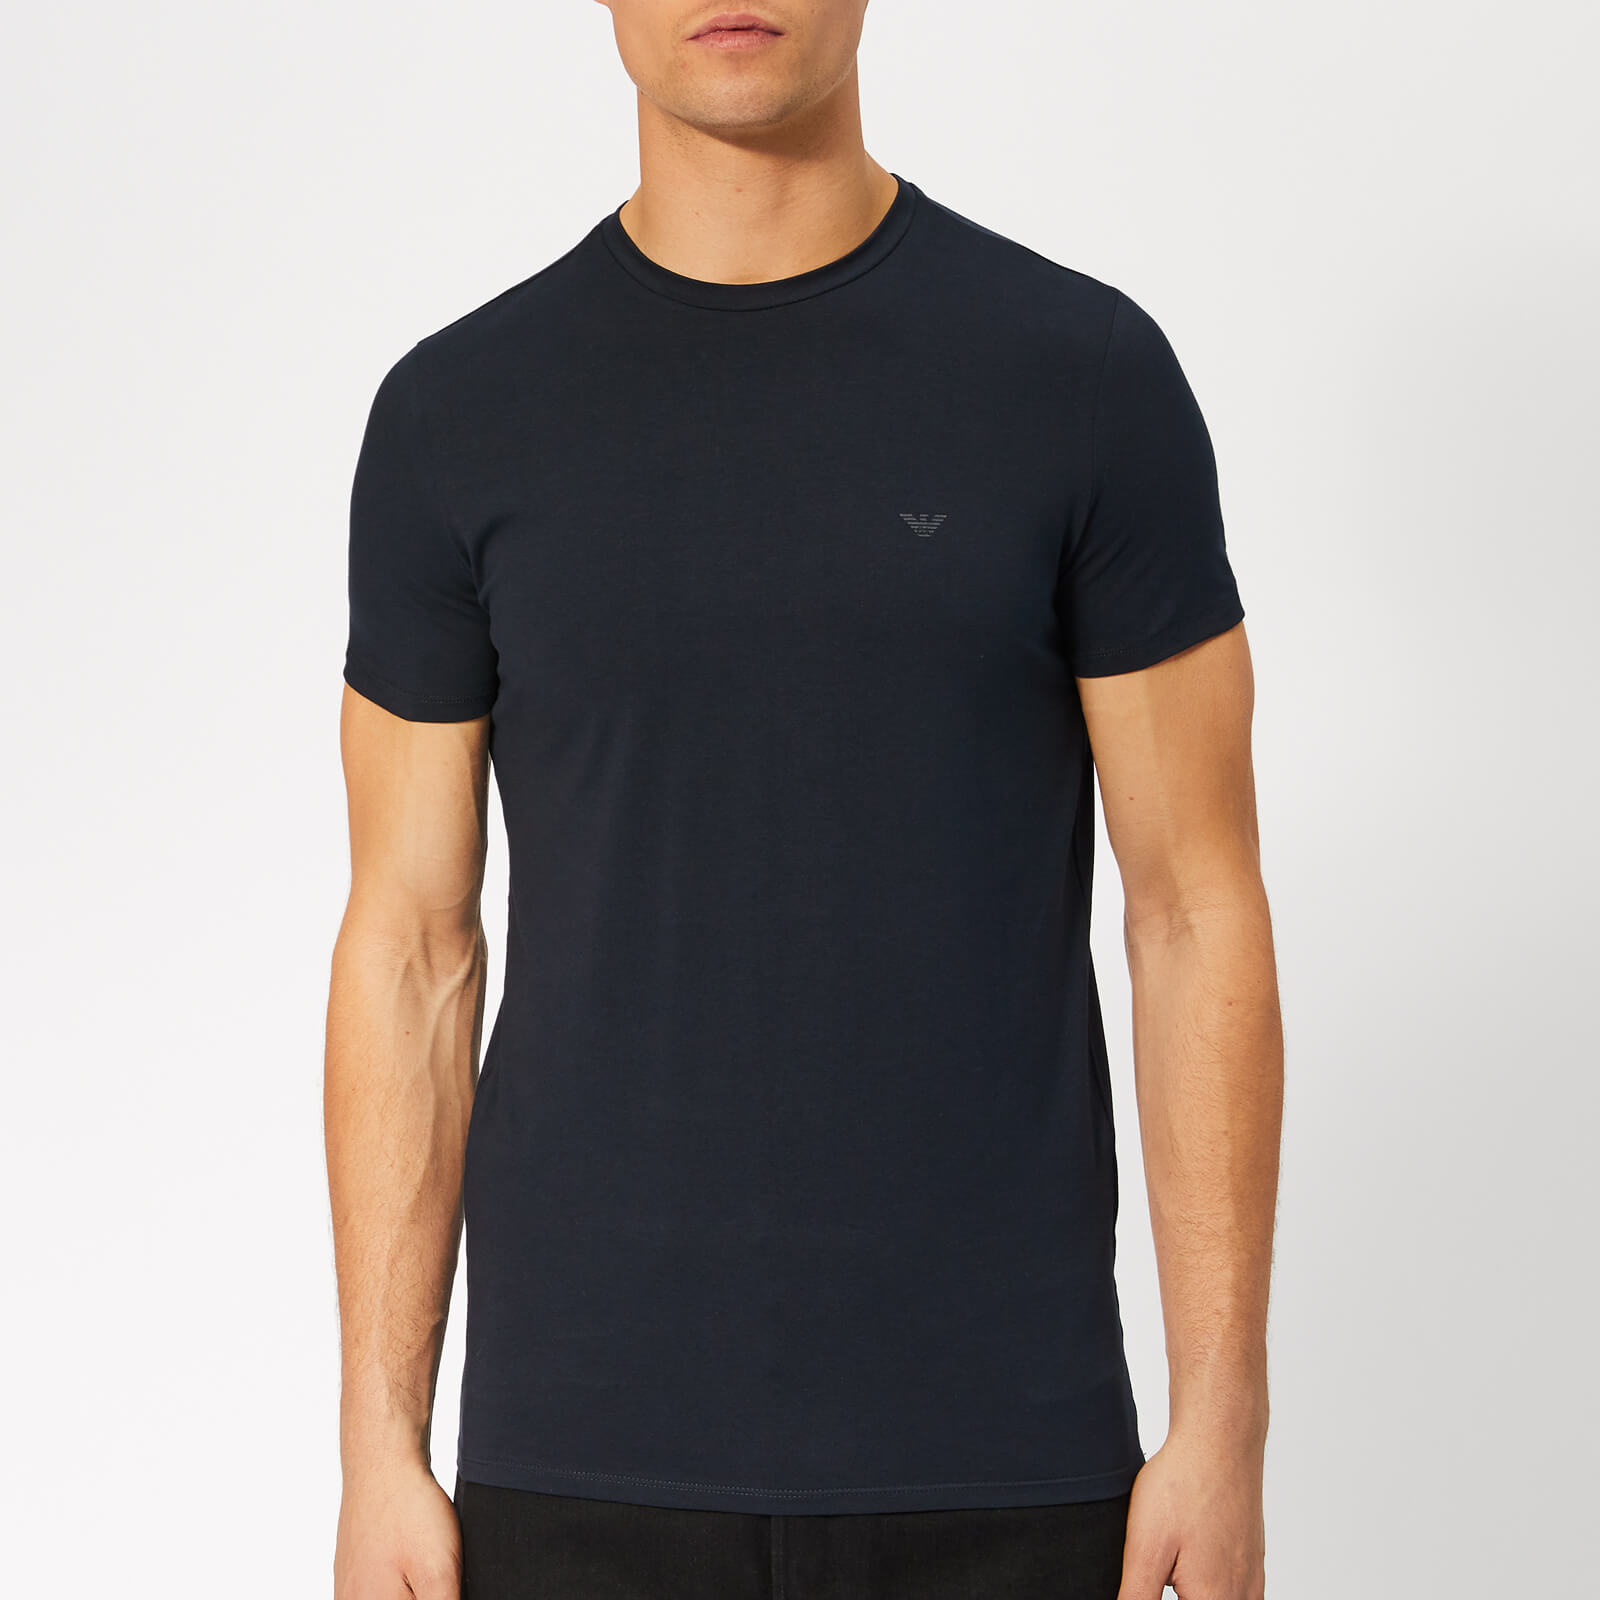 d4423d1d1feb Emporio Armani Men's Small Chest Logo T-Shirt - Blue Scuro - Free UK  Delivery over £50